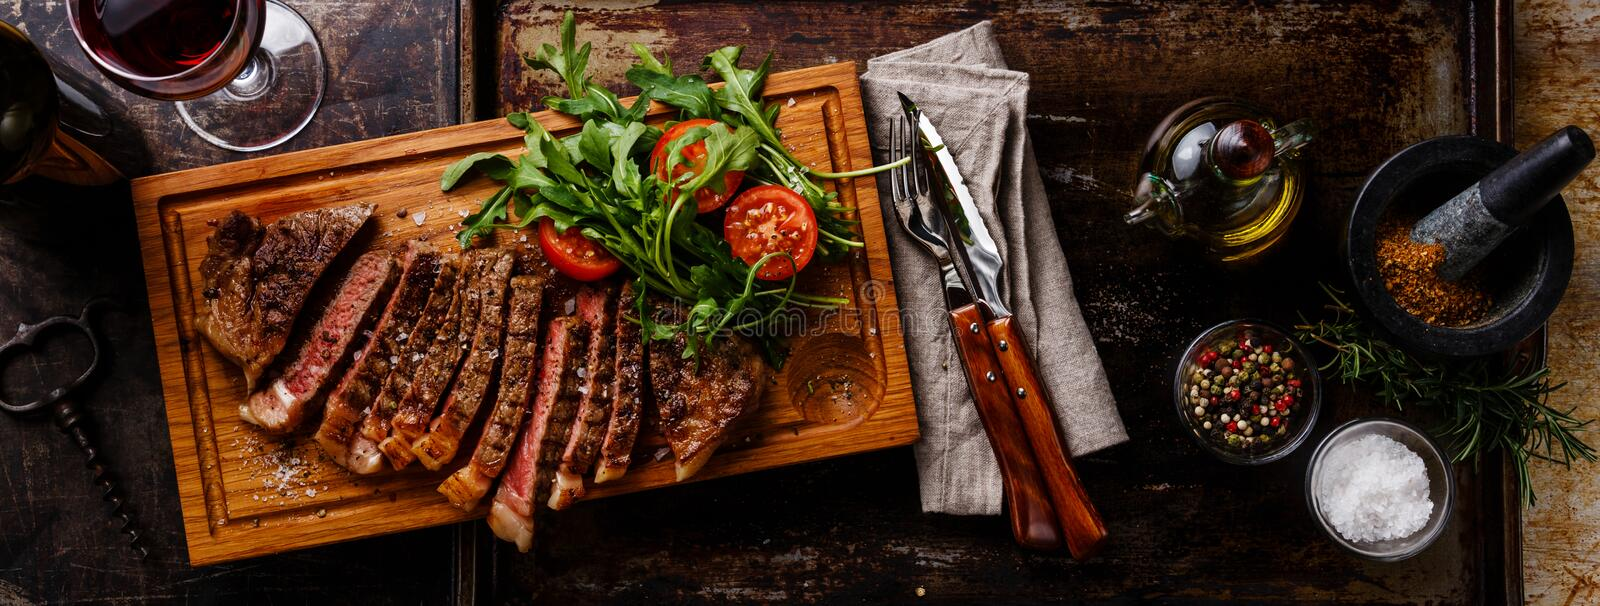 Sliced steak and salad royalty free stock photos